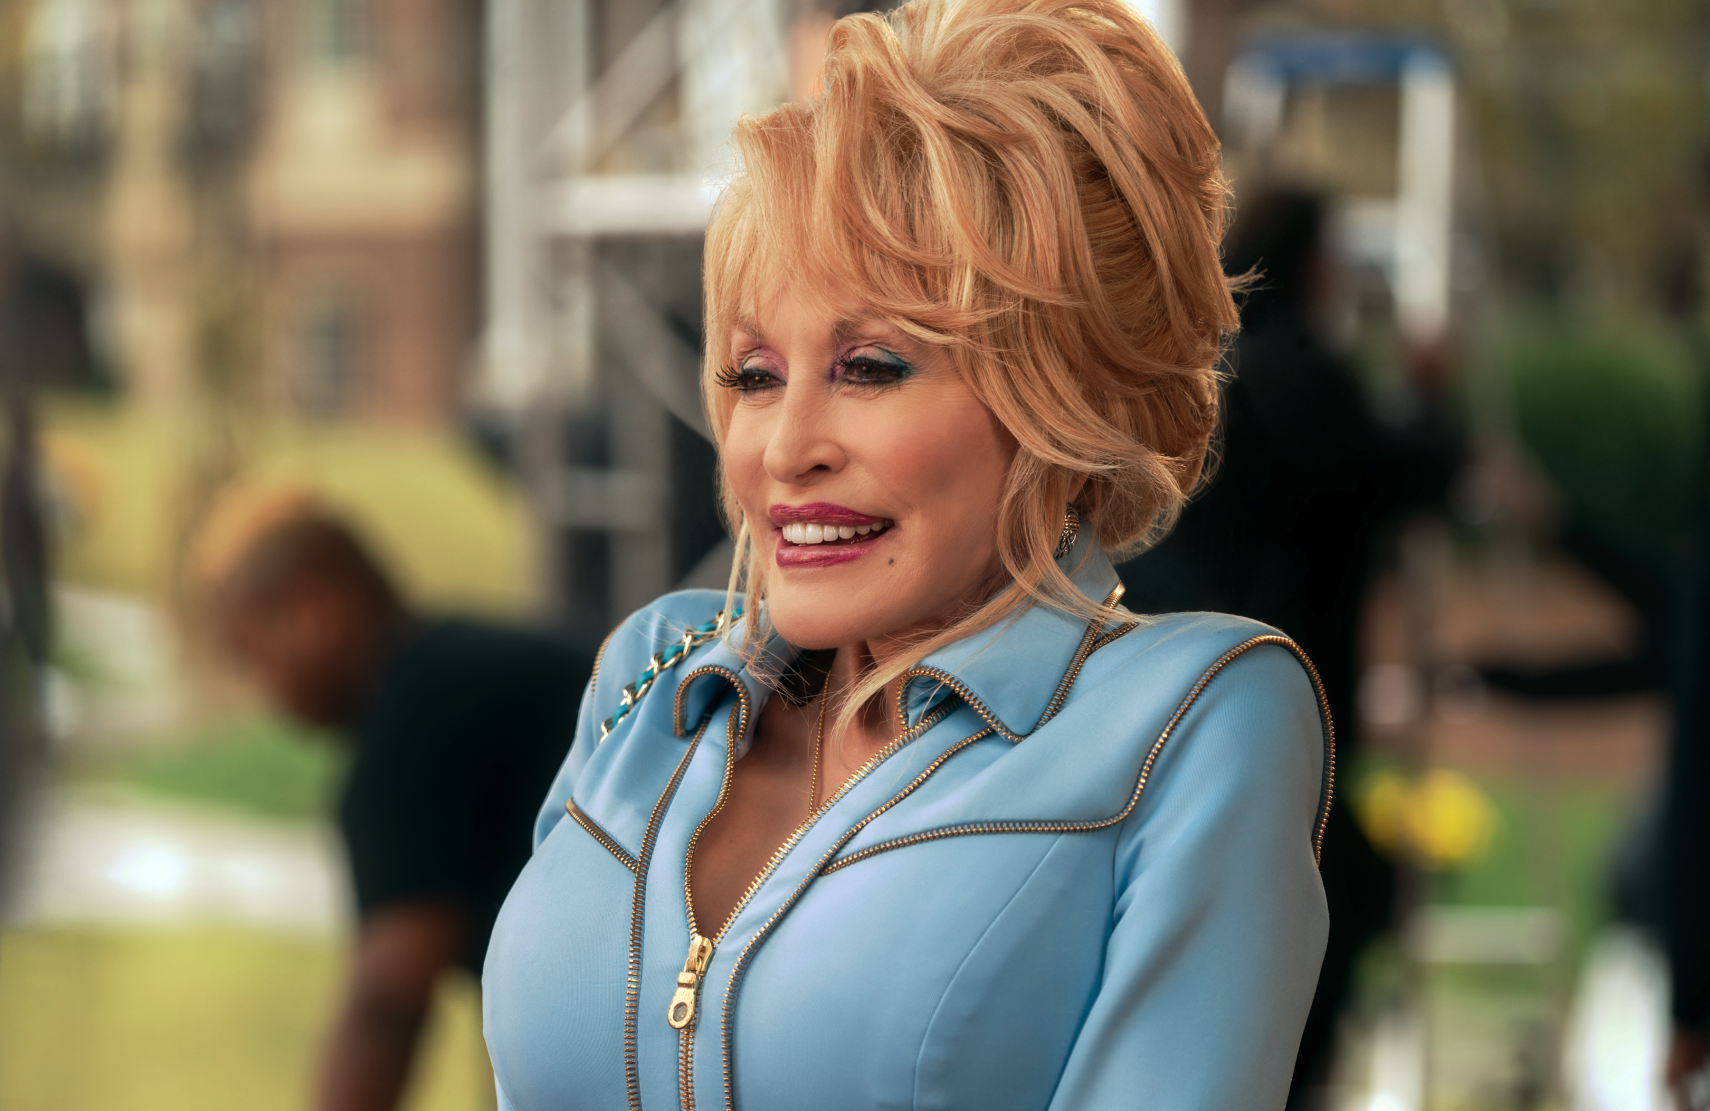 Dolly Parton plays a role in some, but not all, of the episodes of Dolly Parton's Heartstrings. (Netflix)